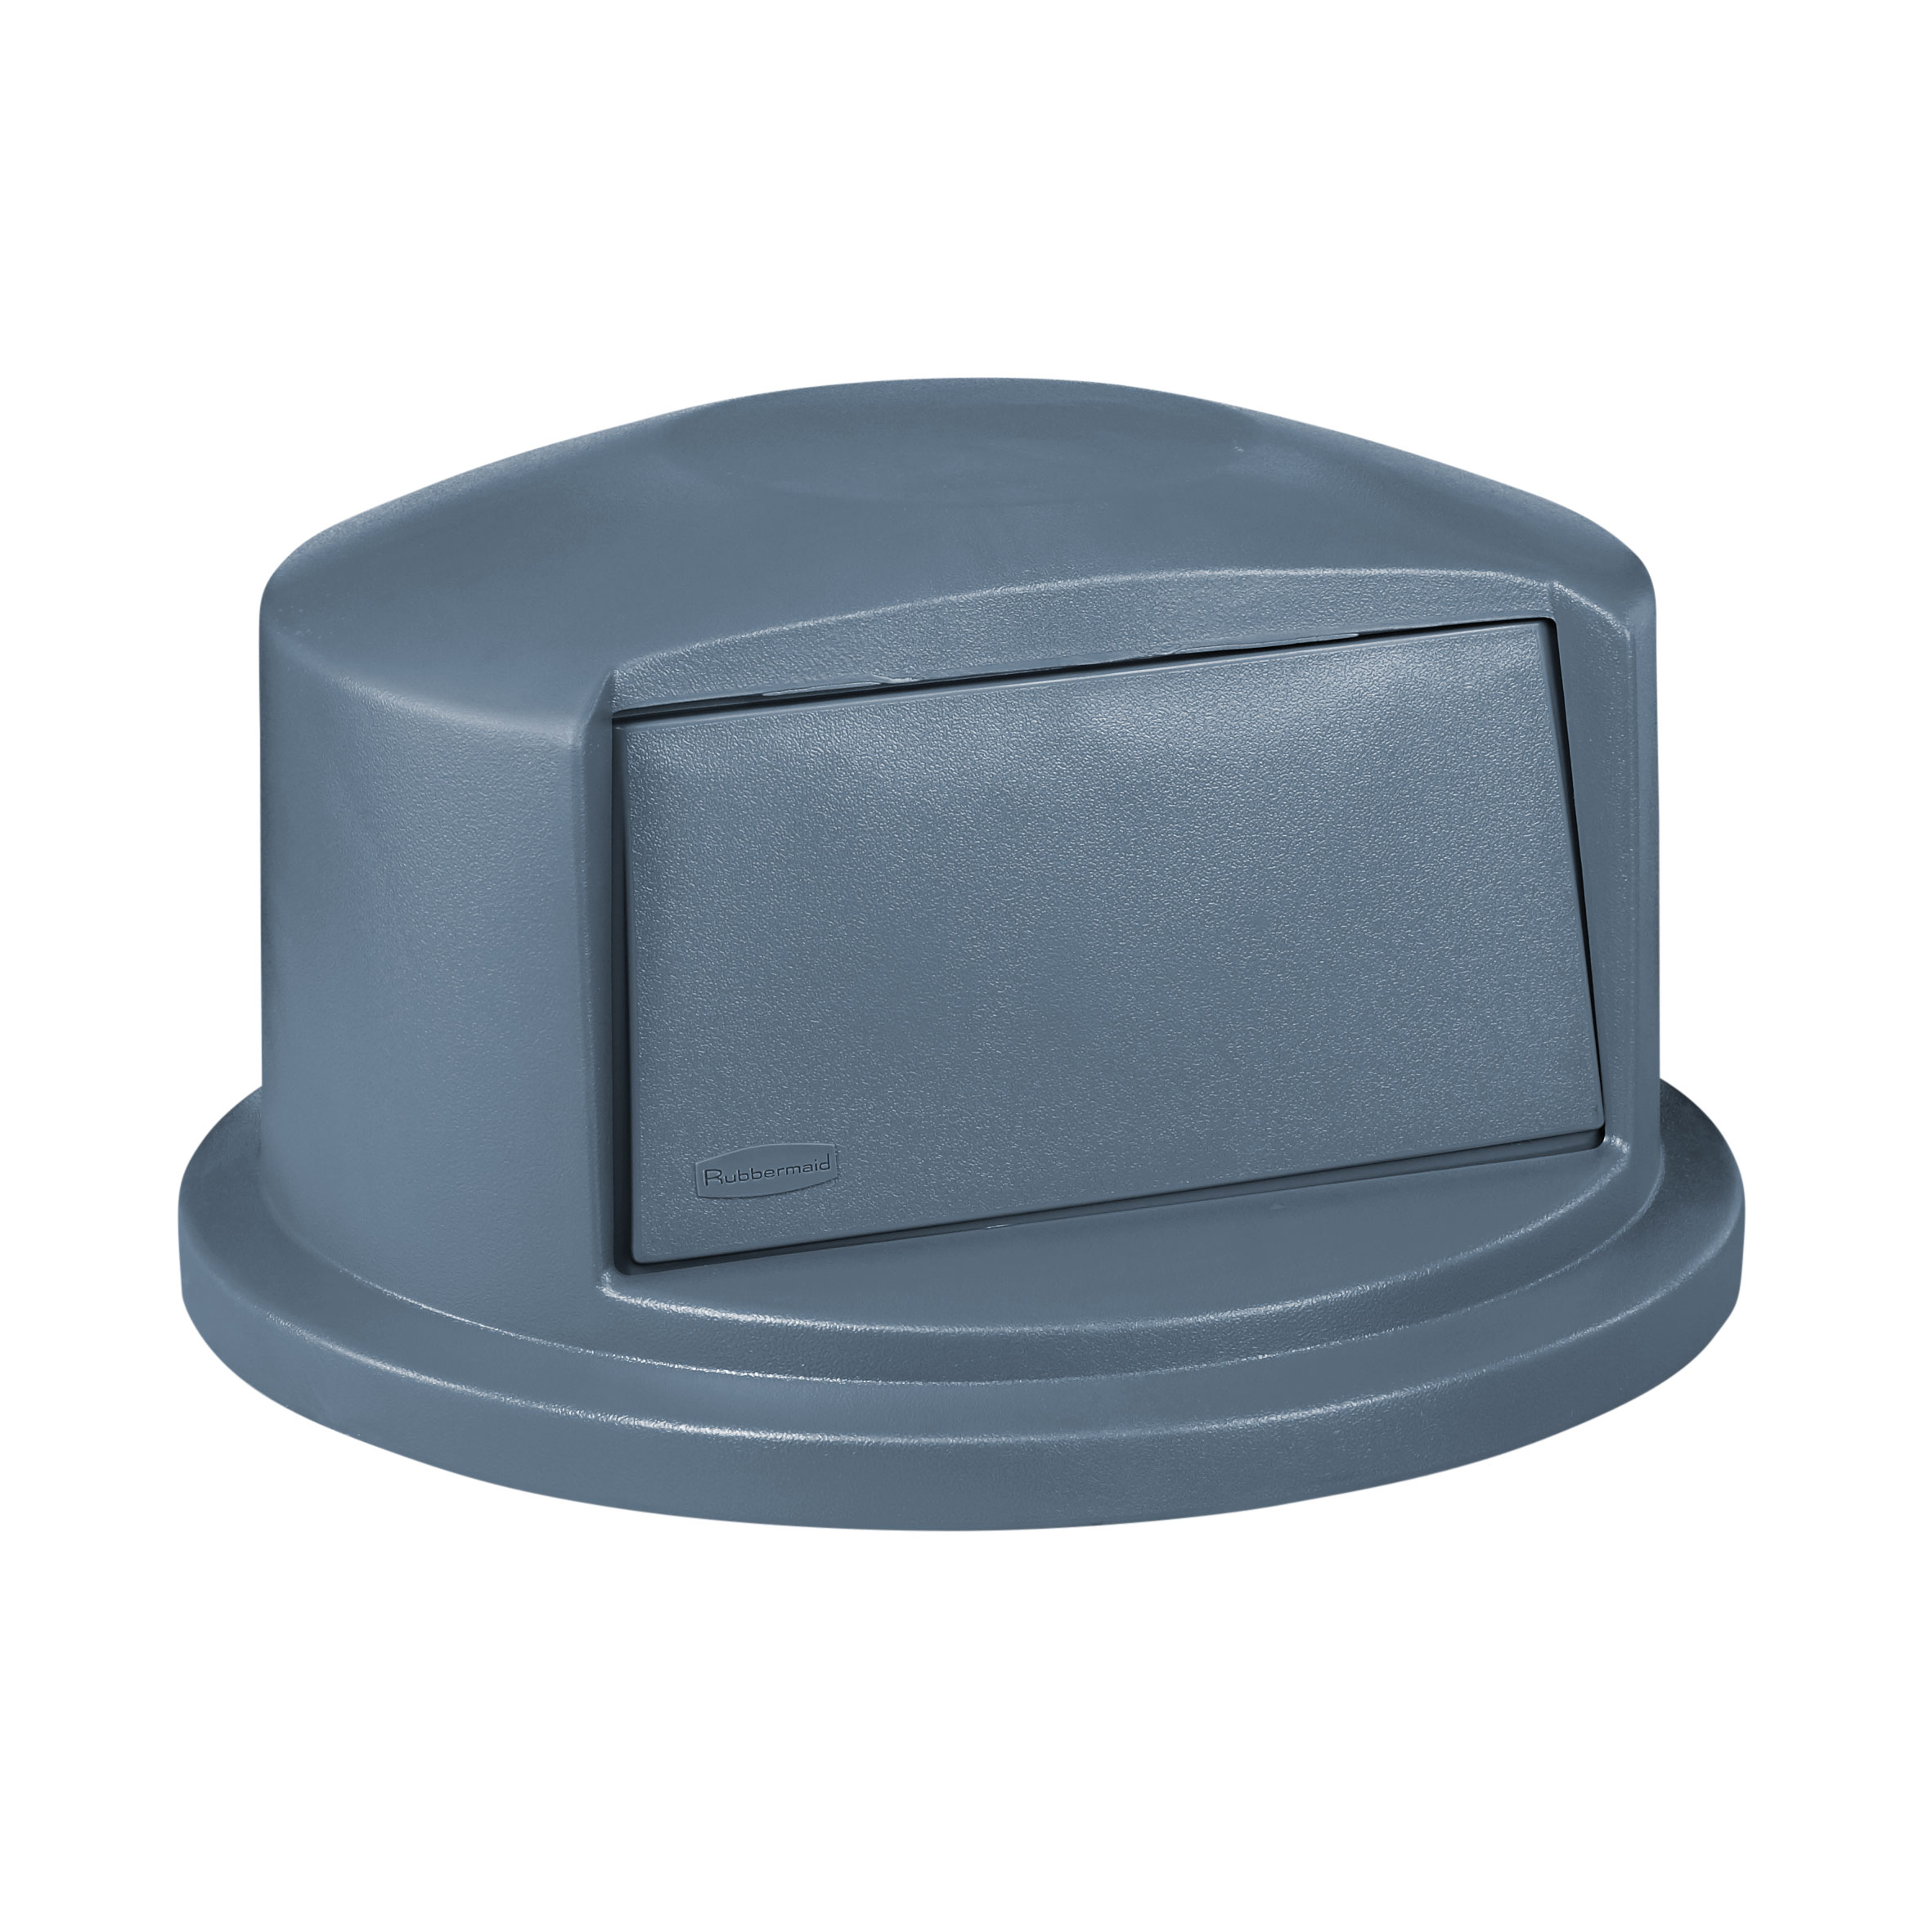 Rubbermaid Commercial Products FG264788GRAY trash receptacle lid / top